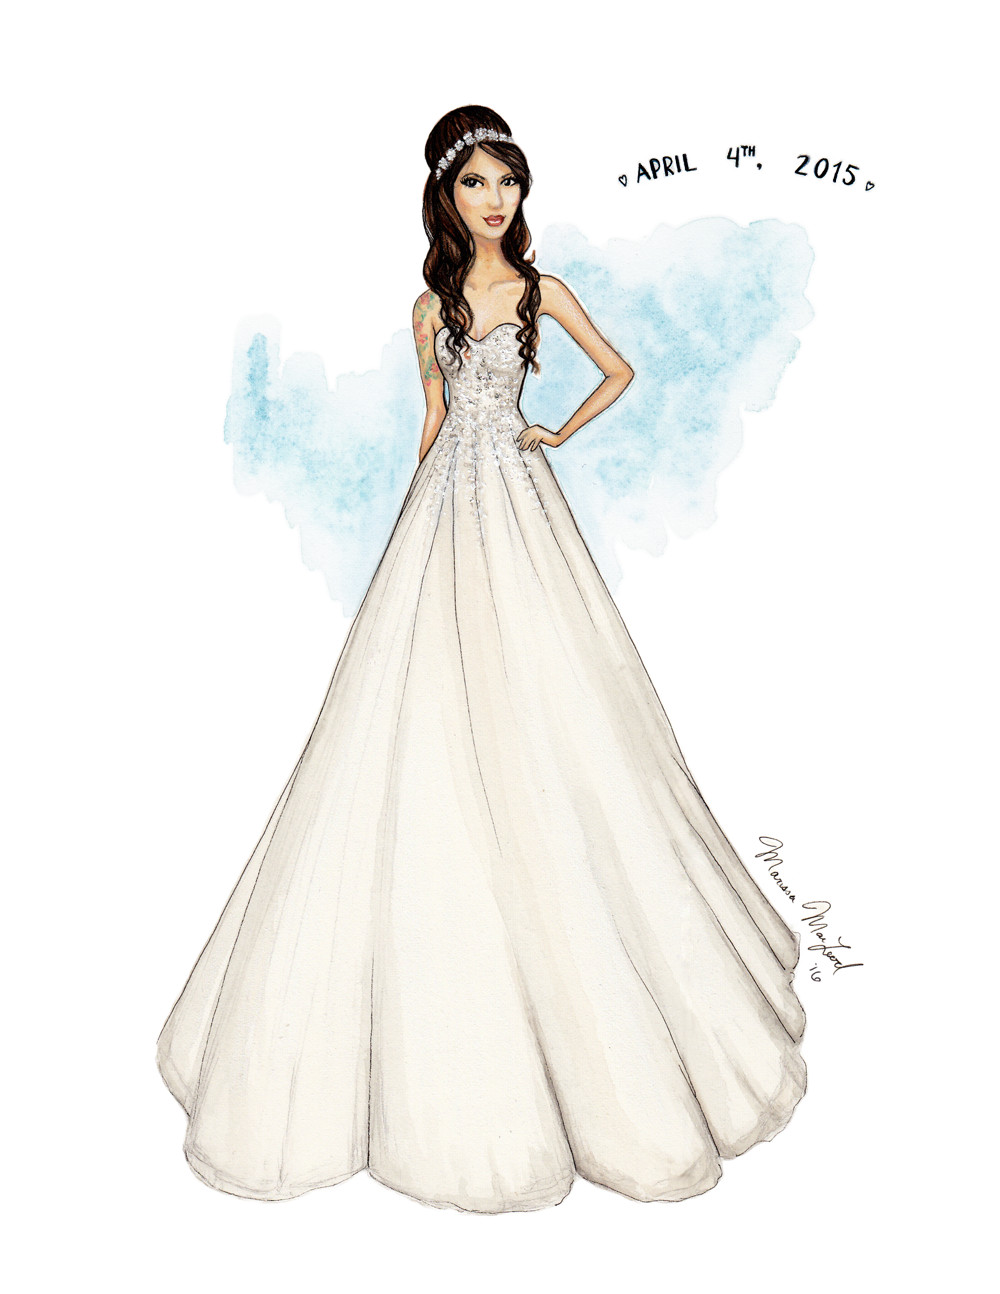 Custom Wedding Gown Illustration by Marissa MacLeod of Dally Creativity Co.